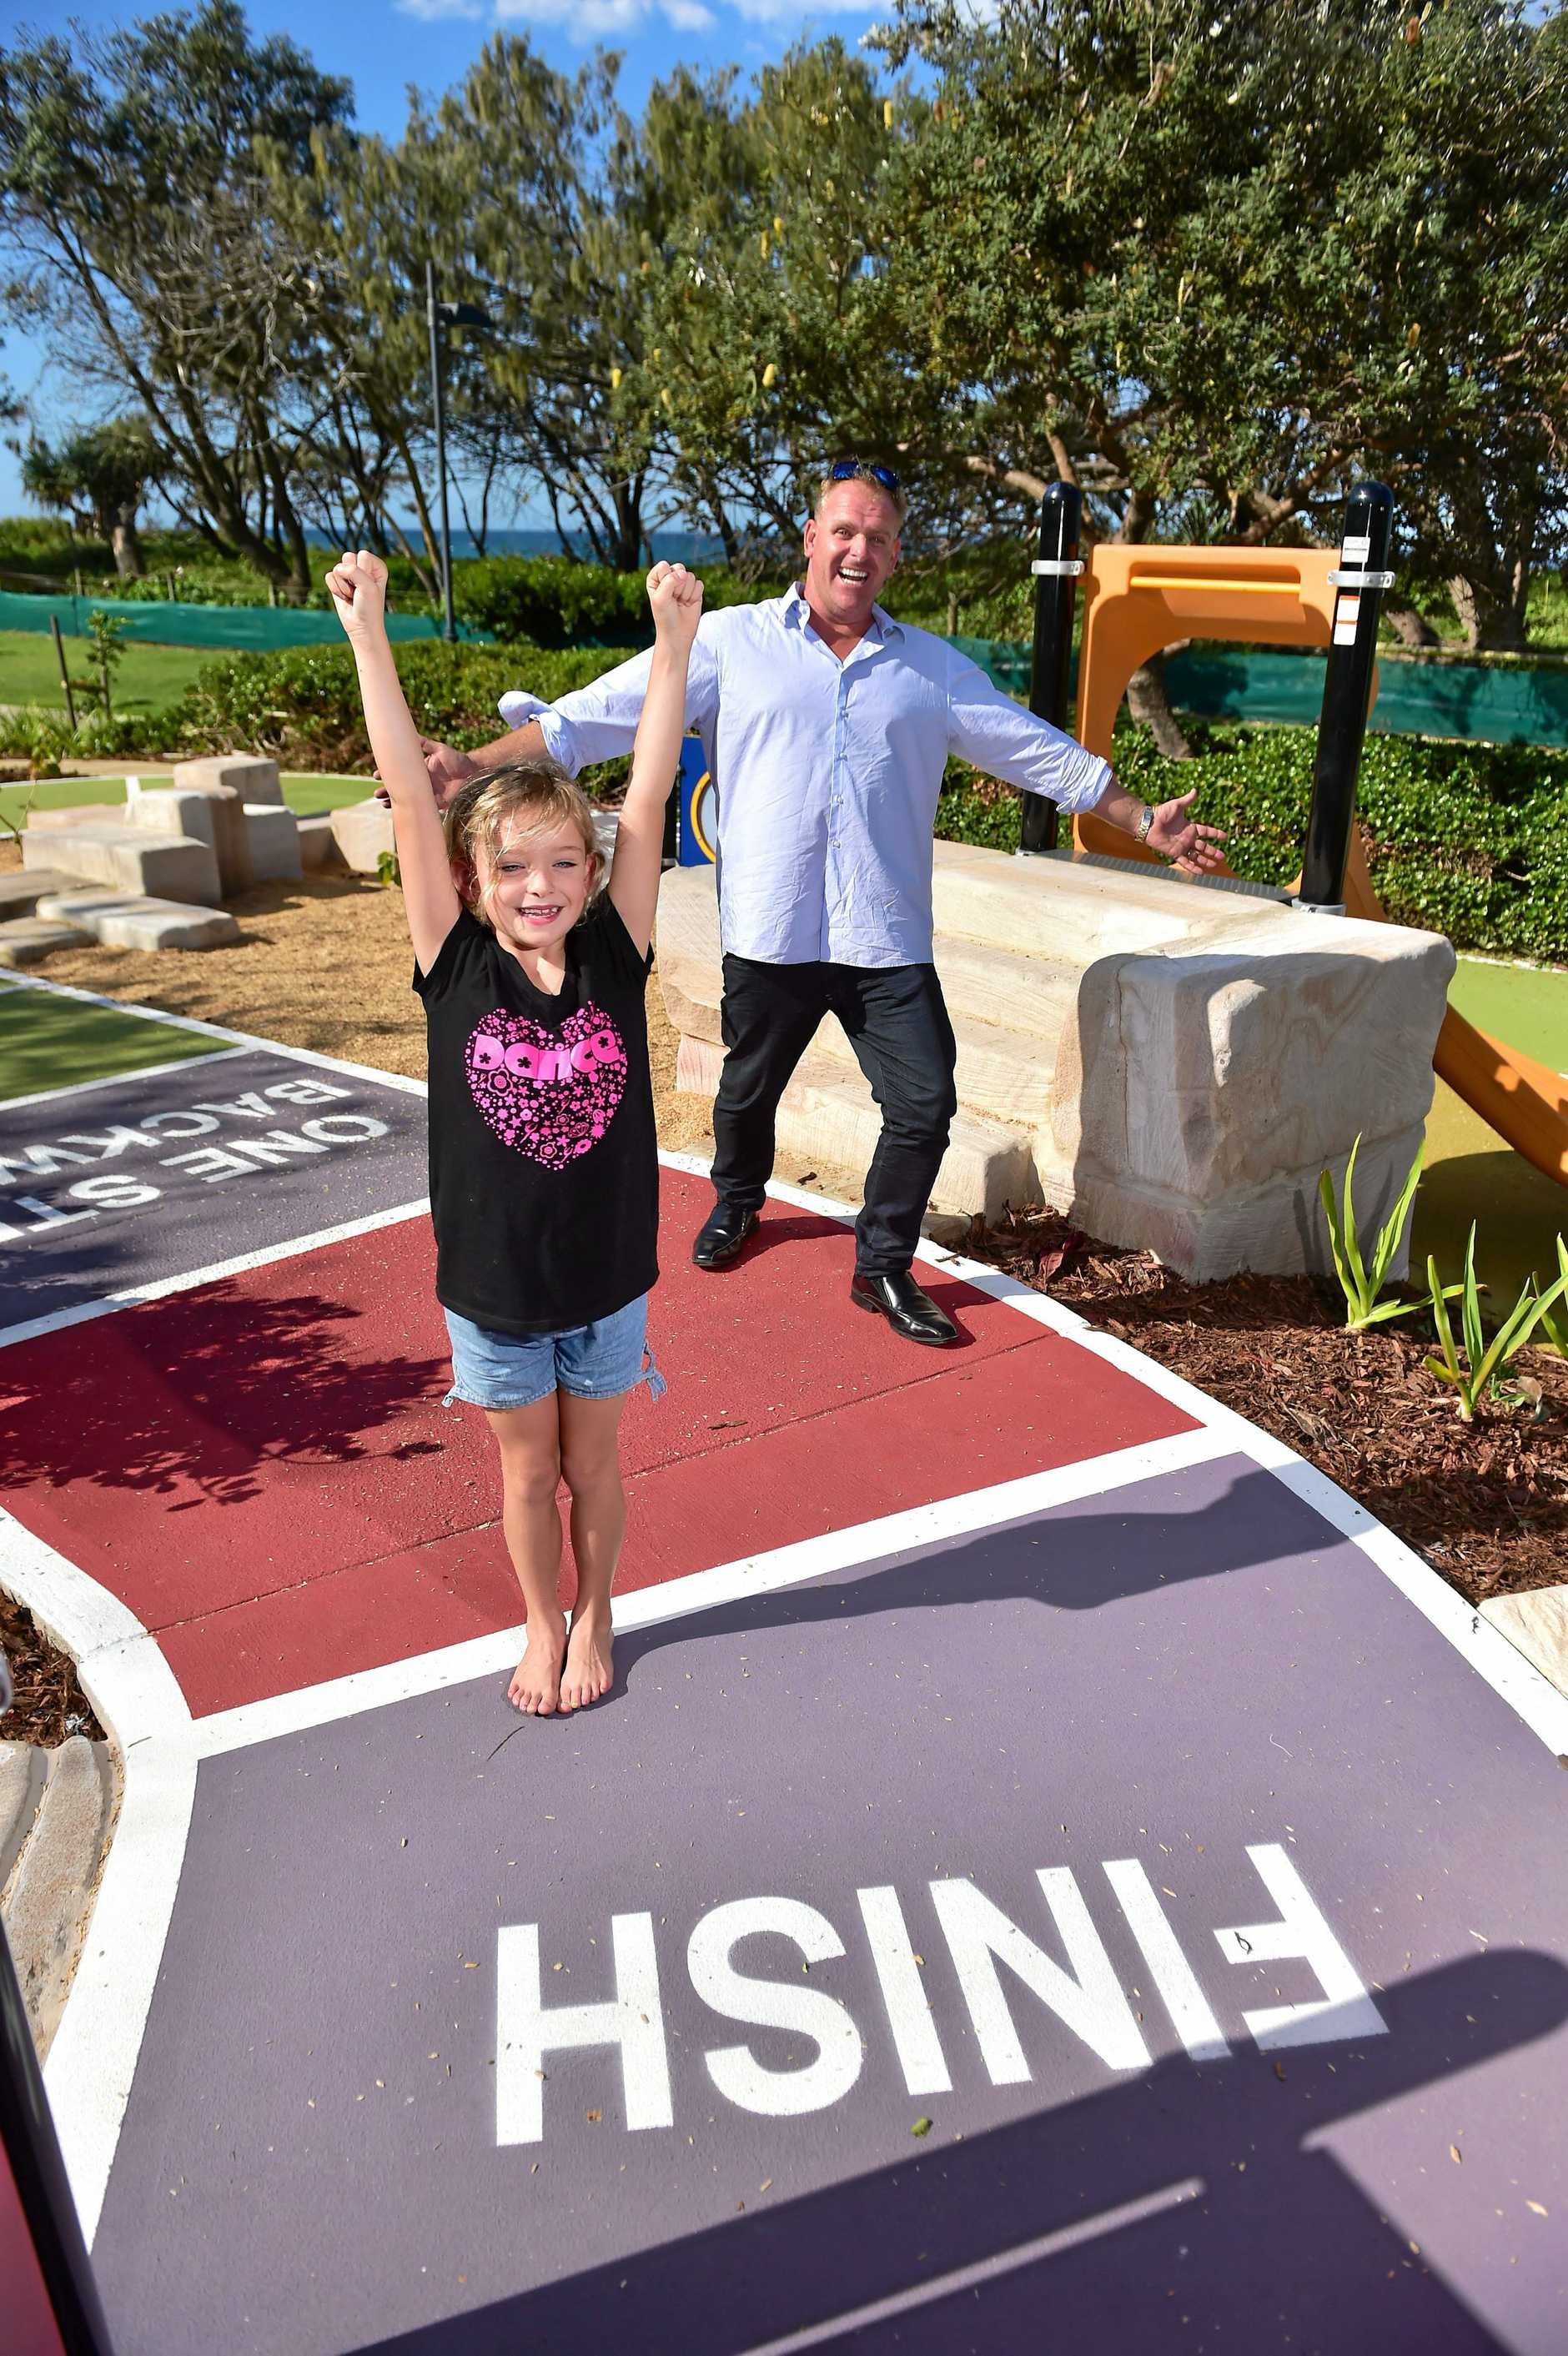 Councillor Jason Opray and his duaghter Jay Jay, 7, at the snakes and ladders playground in the park.